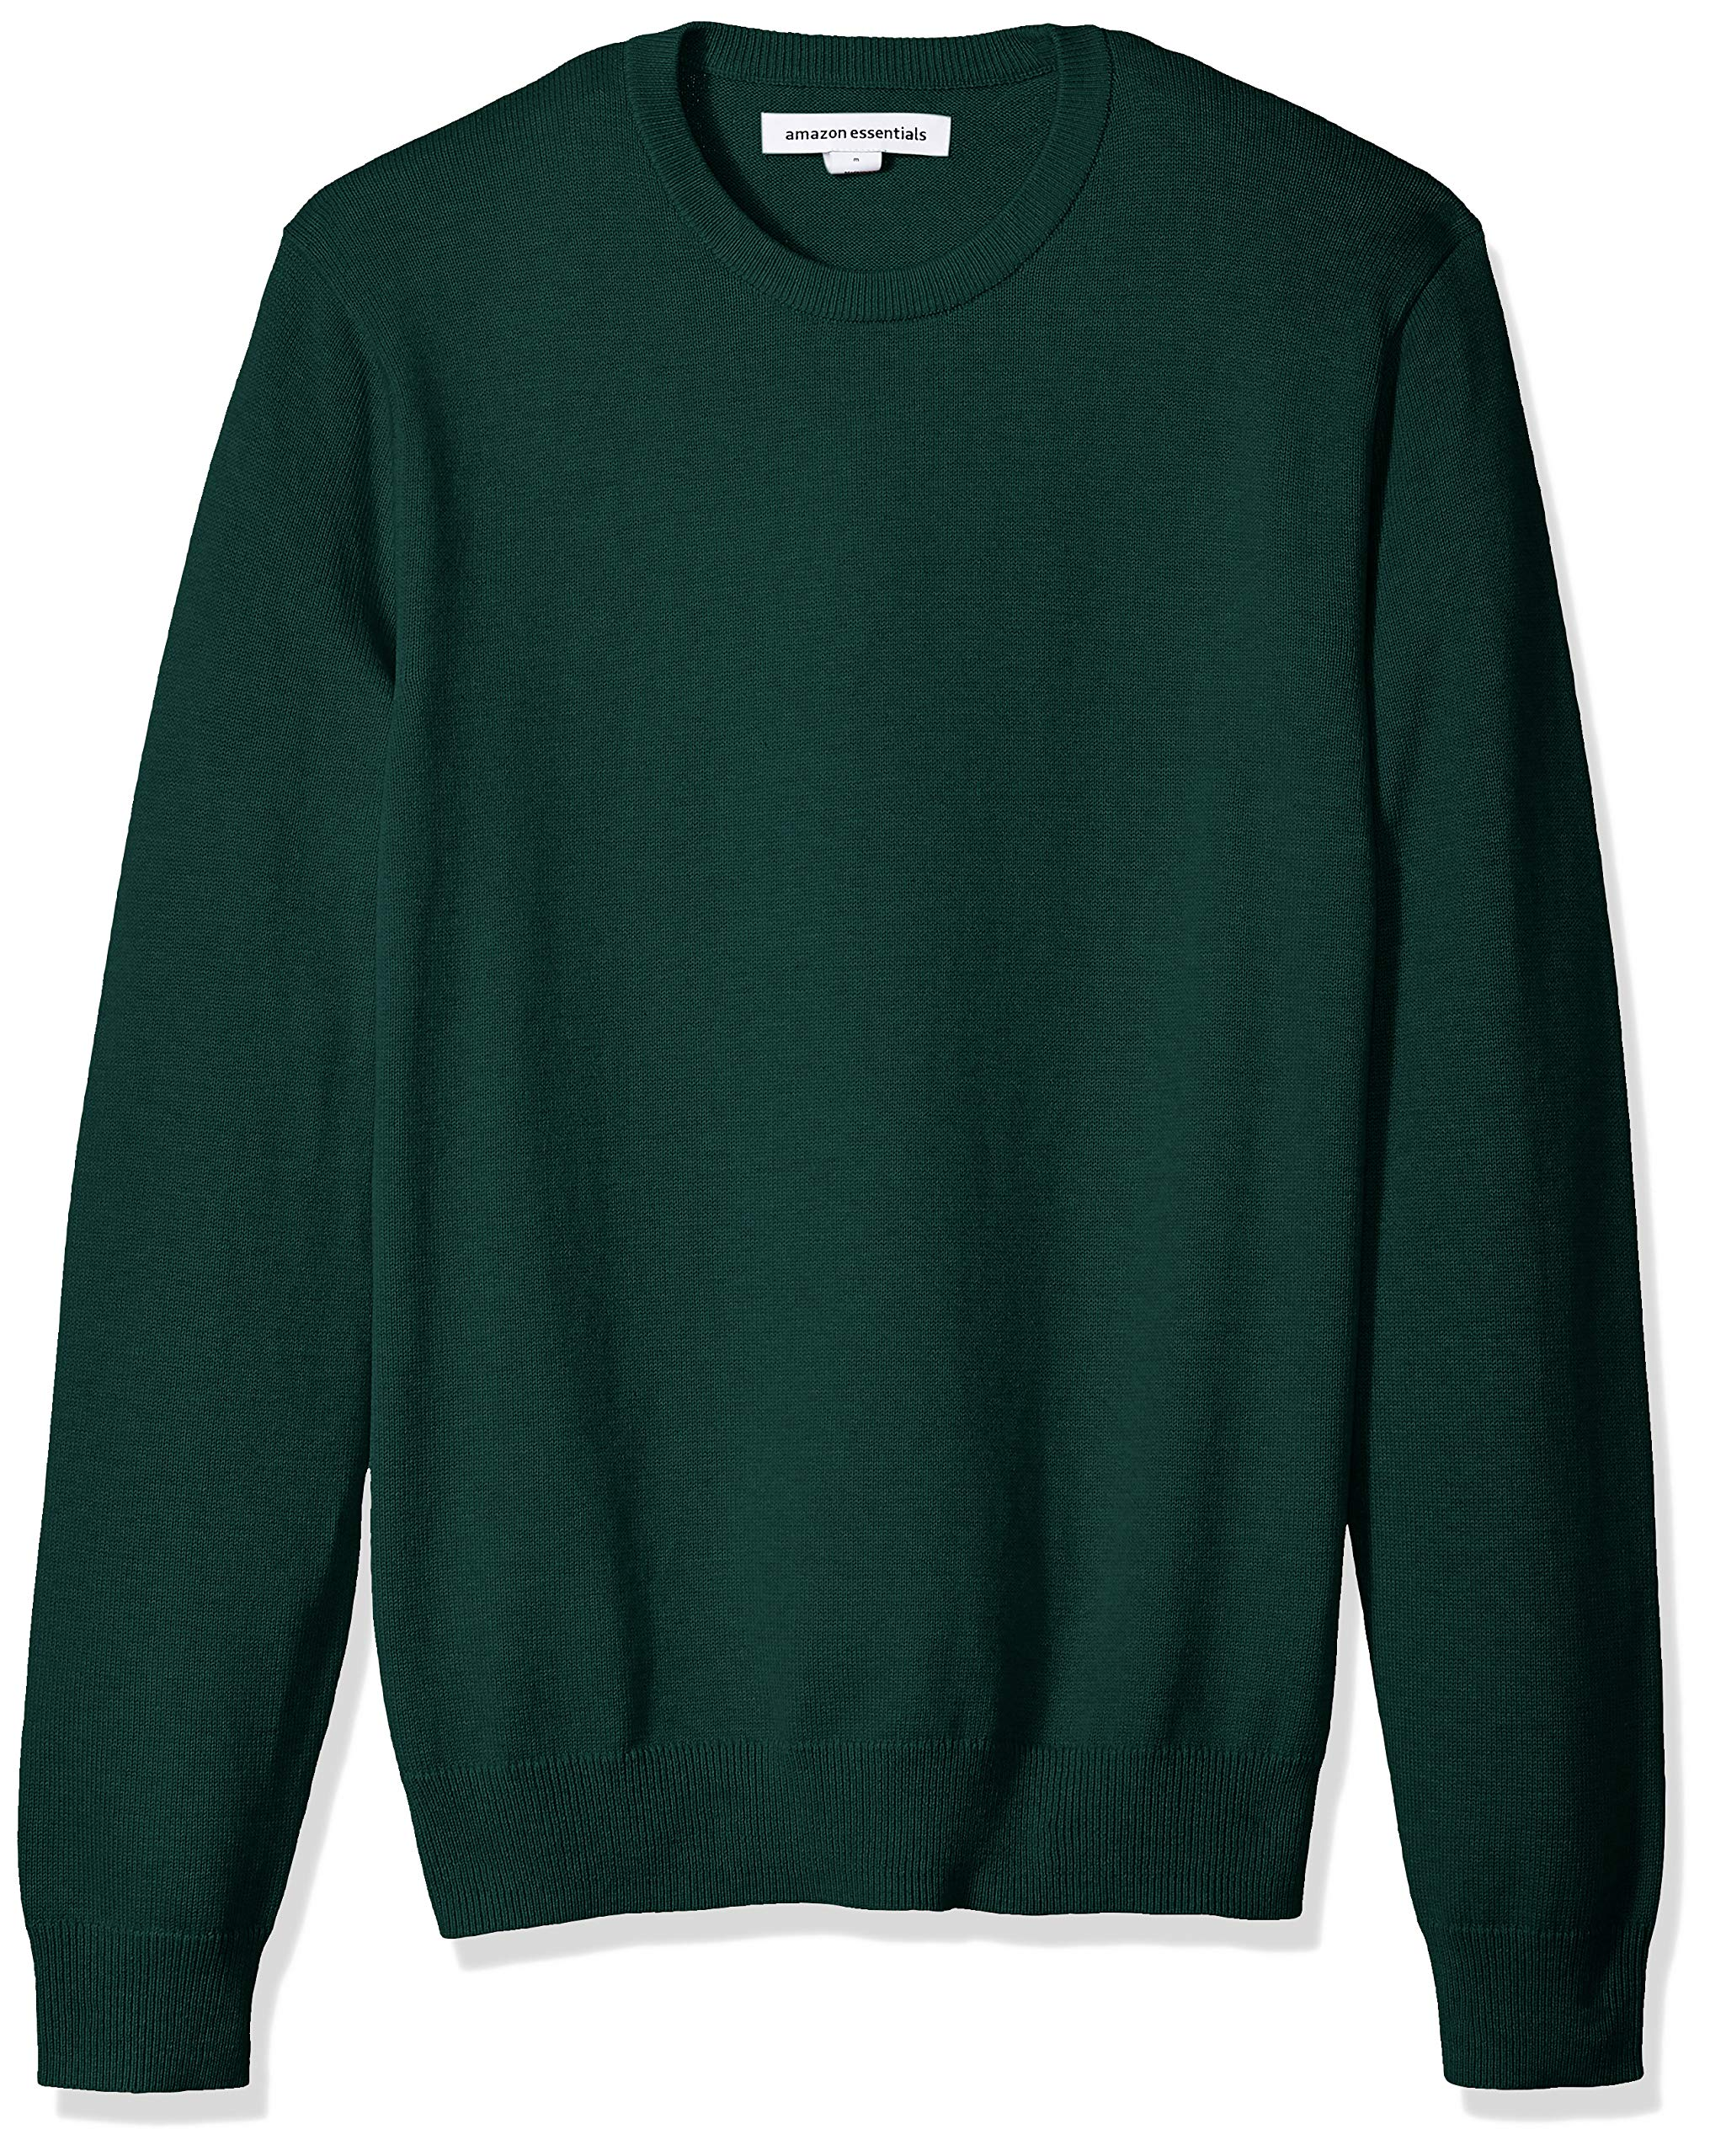 Amazon Essentials Men's Standard Crewneck Sweater, Dark Green, X-Small